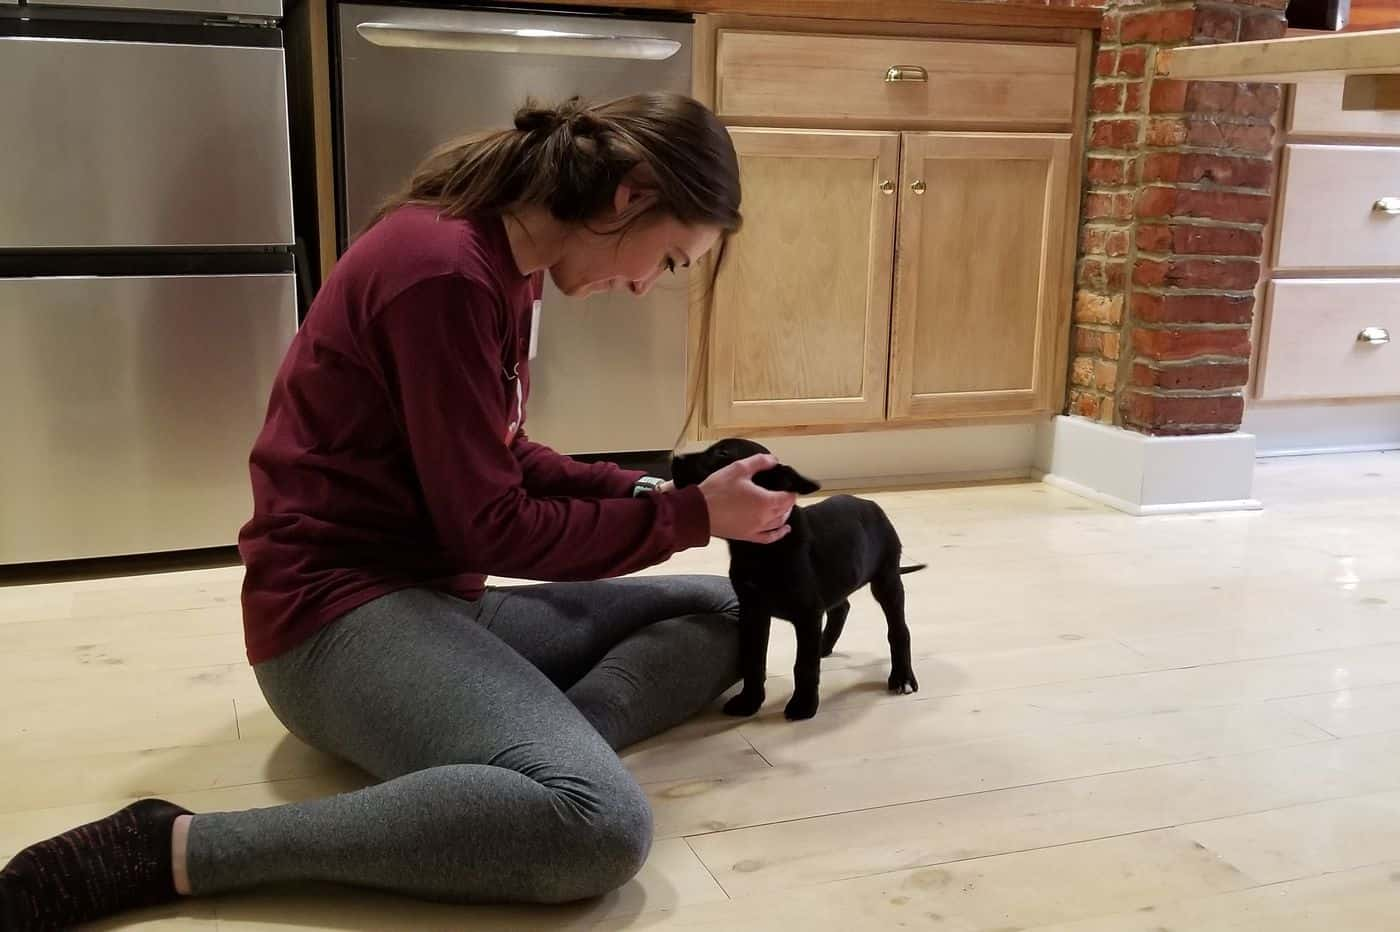 A young woman sits on her kitchen floor and rubs her tiny black puppy's ears